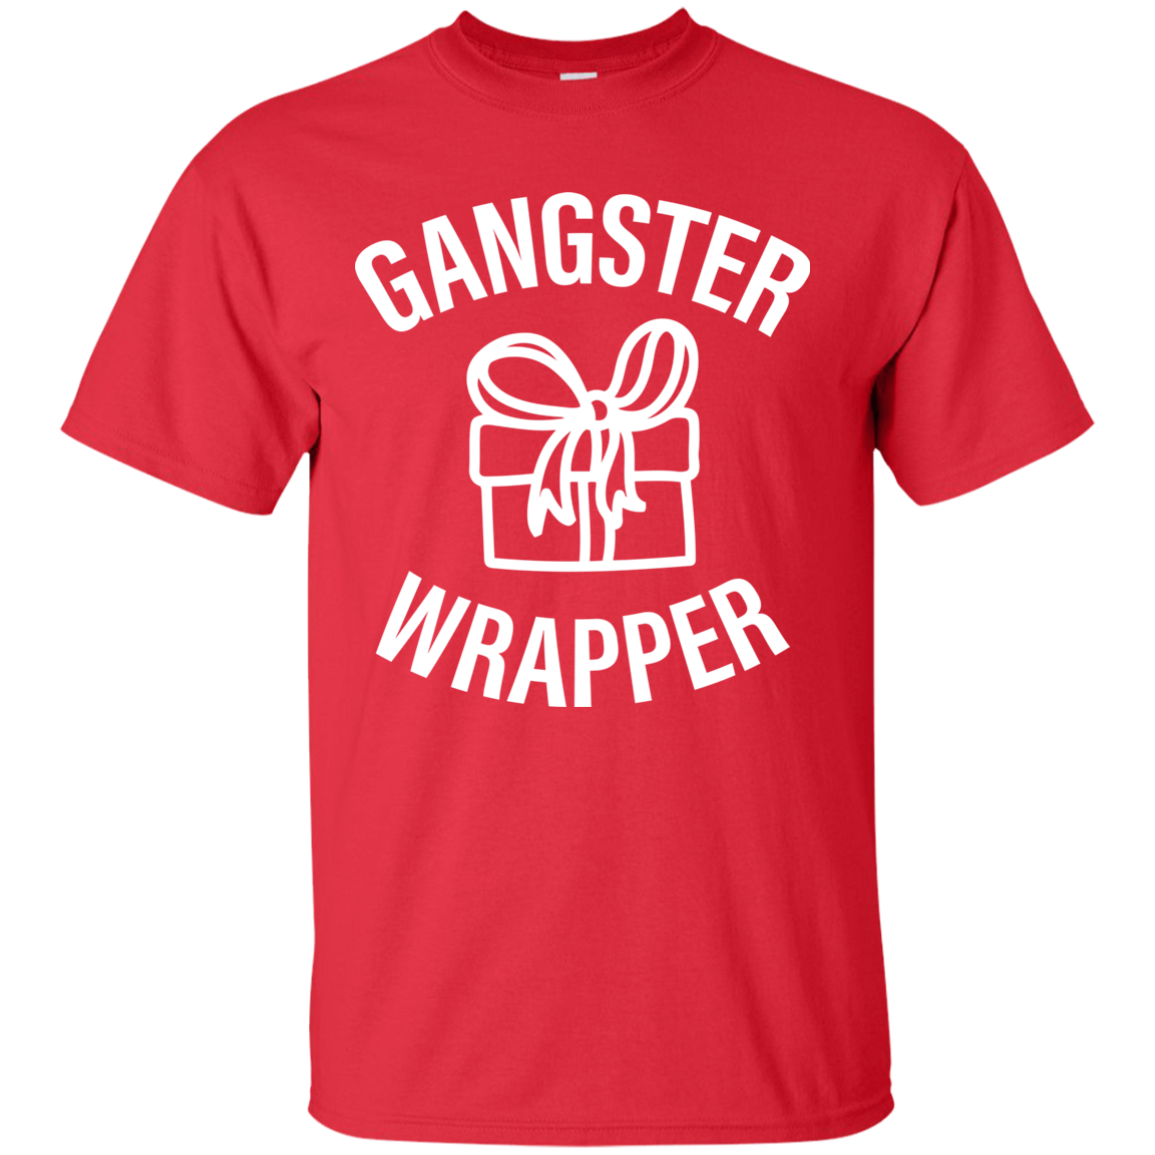 Gangster Wrapper Christmas Shirt, Sweater